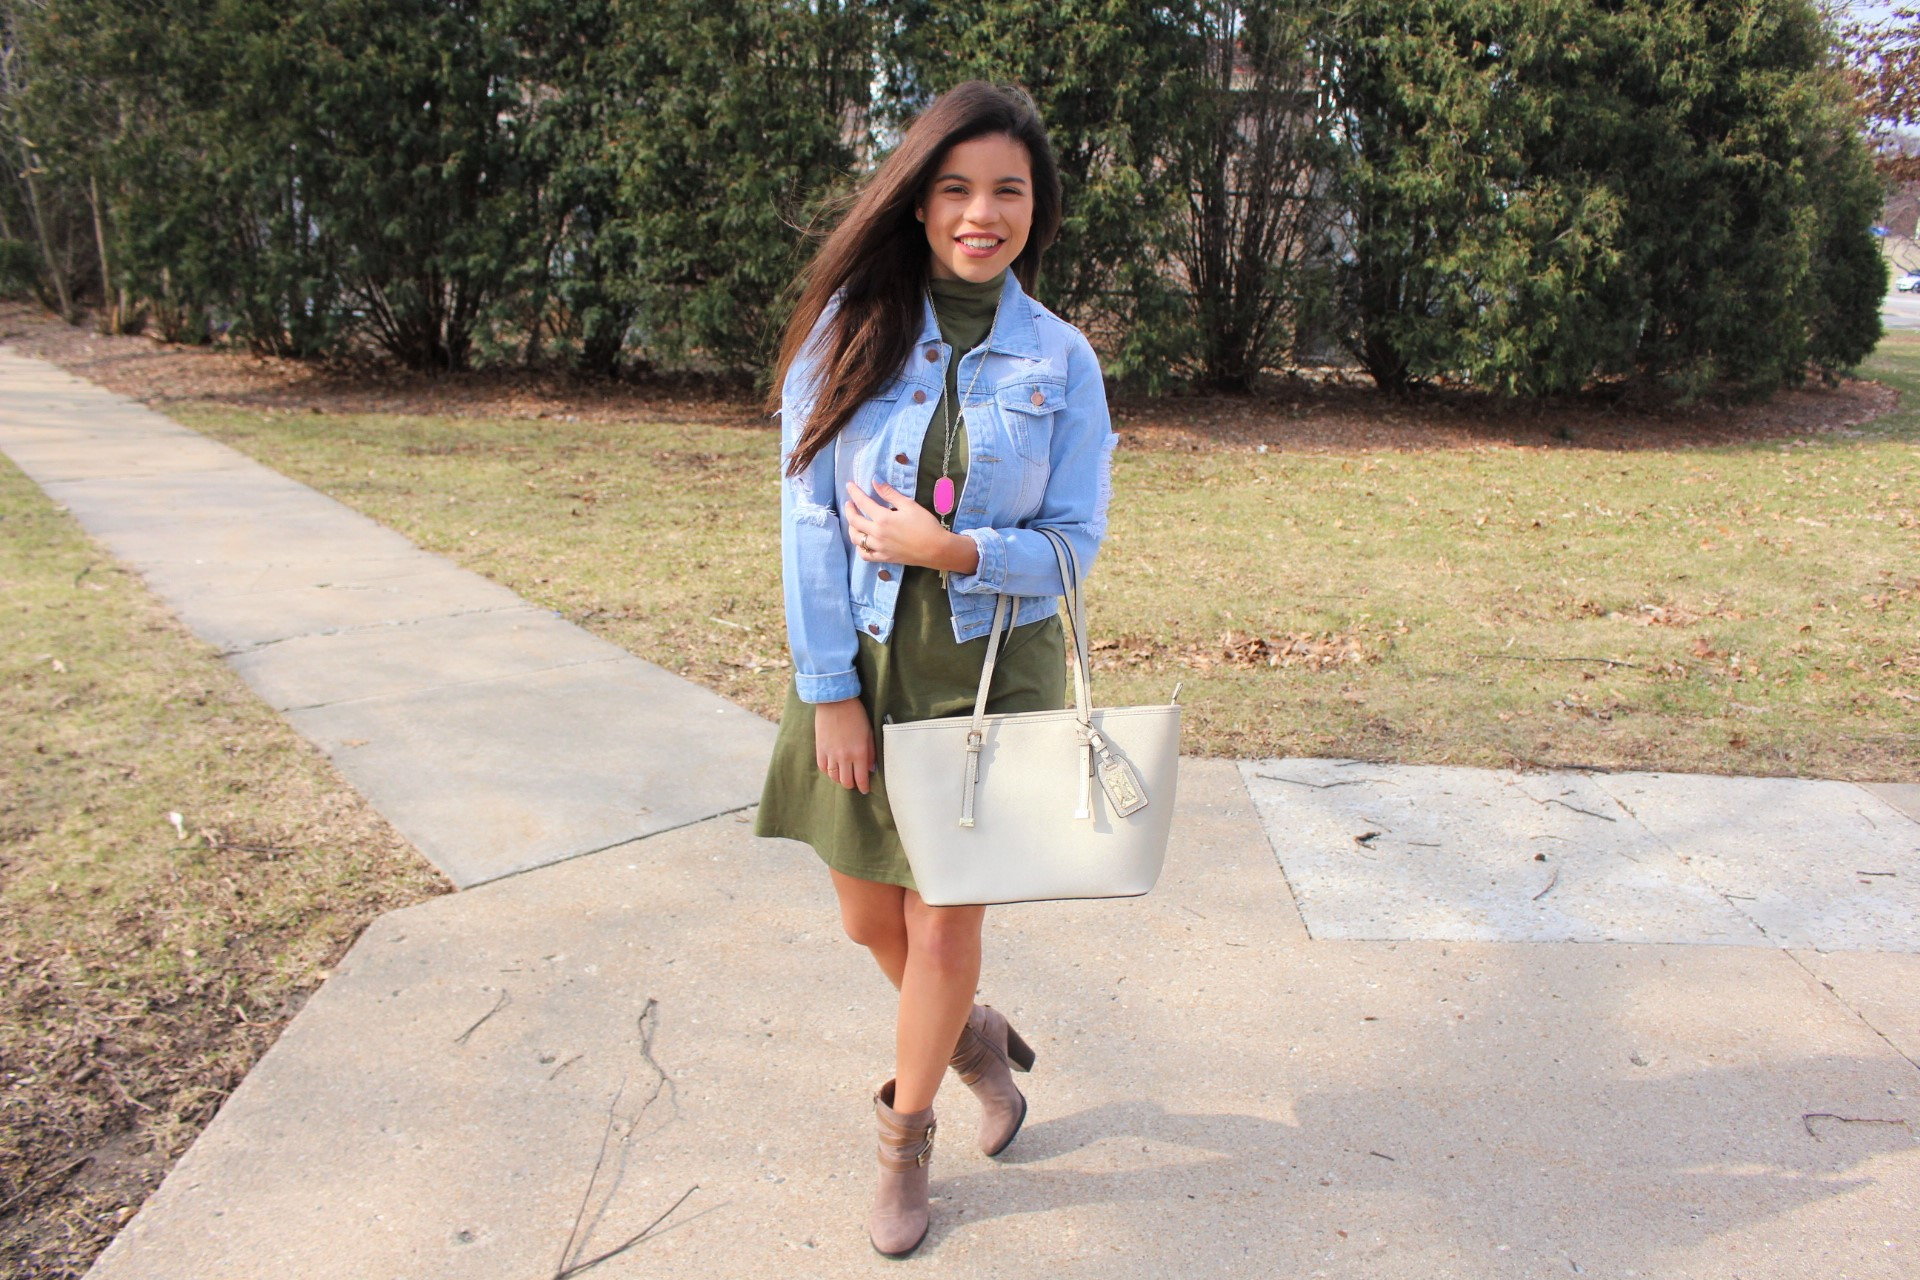 makeme chic military dress ootd jean jacket ALDO spring outfit handbag accesories ripped jean jacket perfect spring outfit olive dress outfit ootn spring by alejandra avila